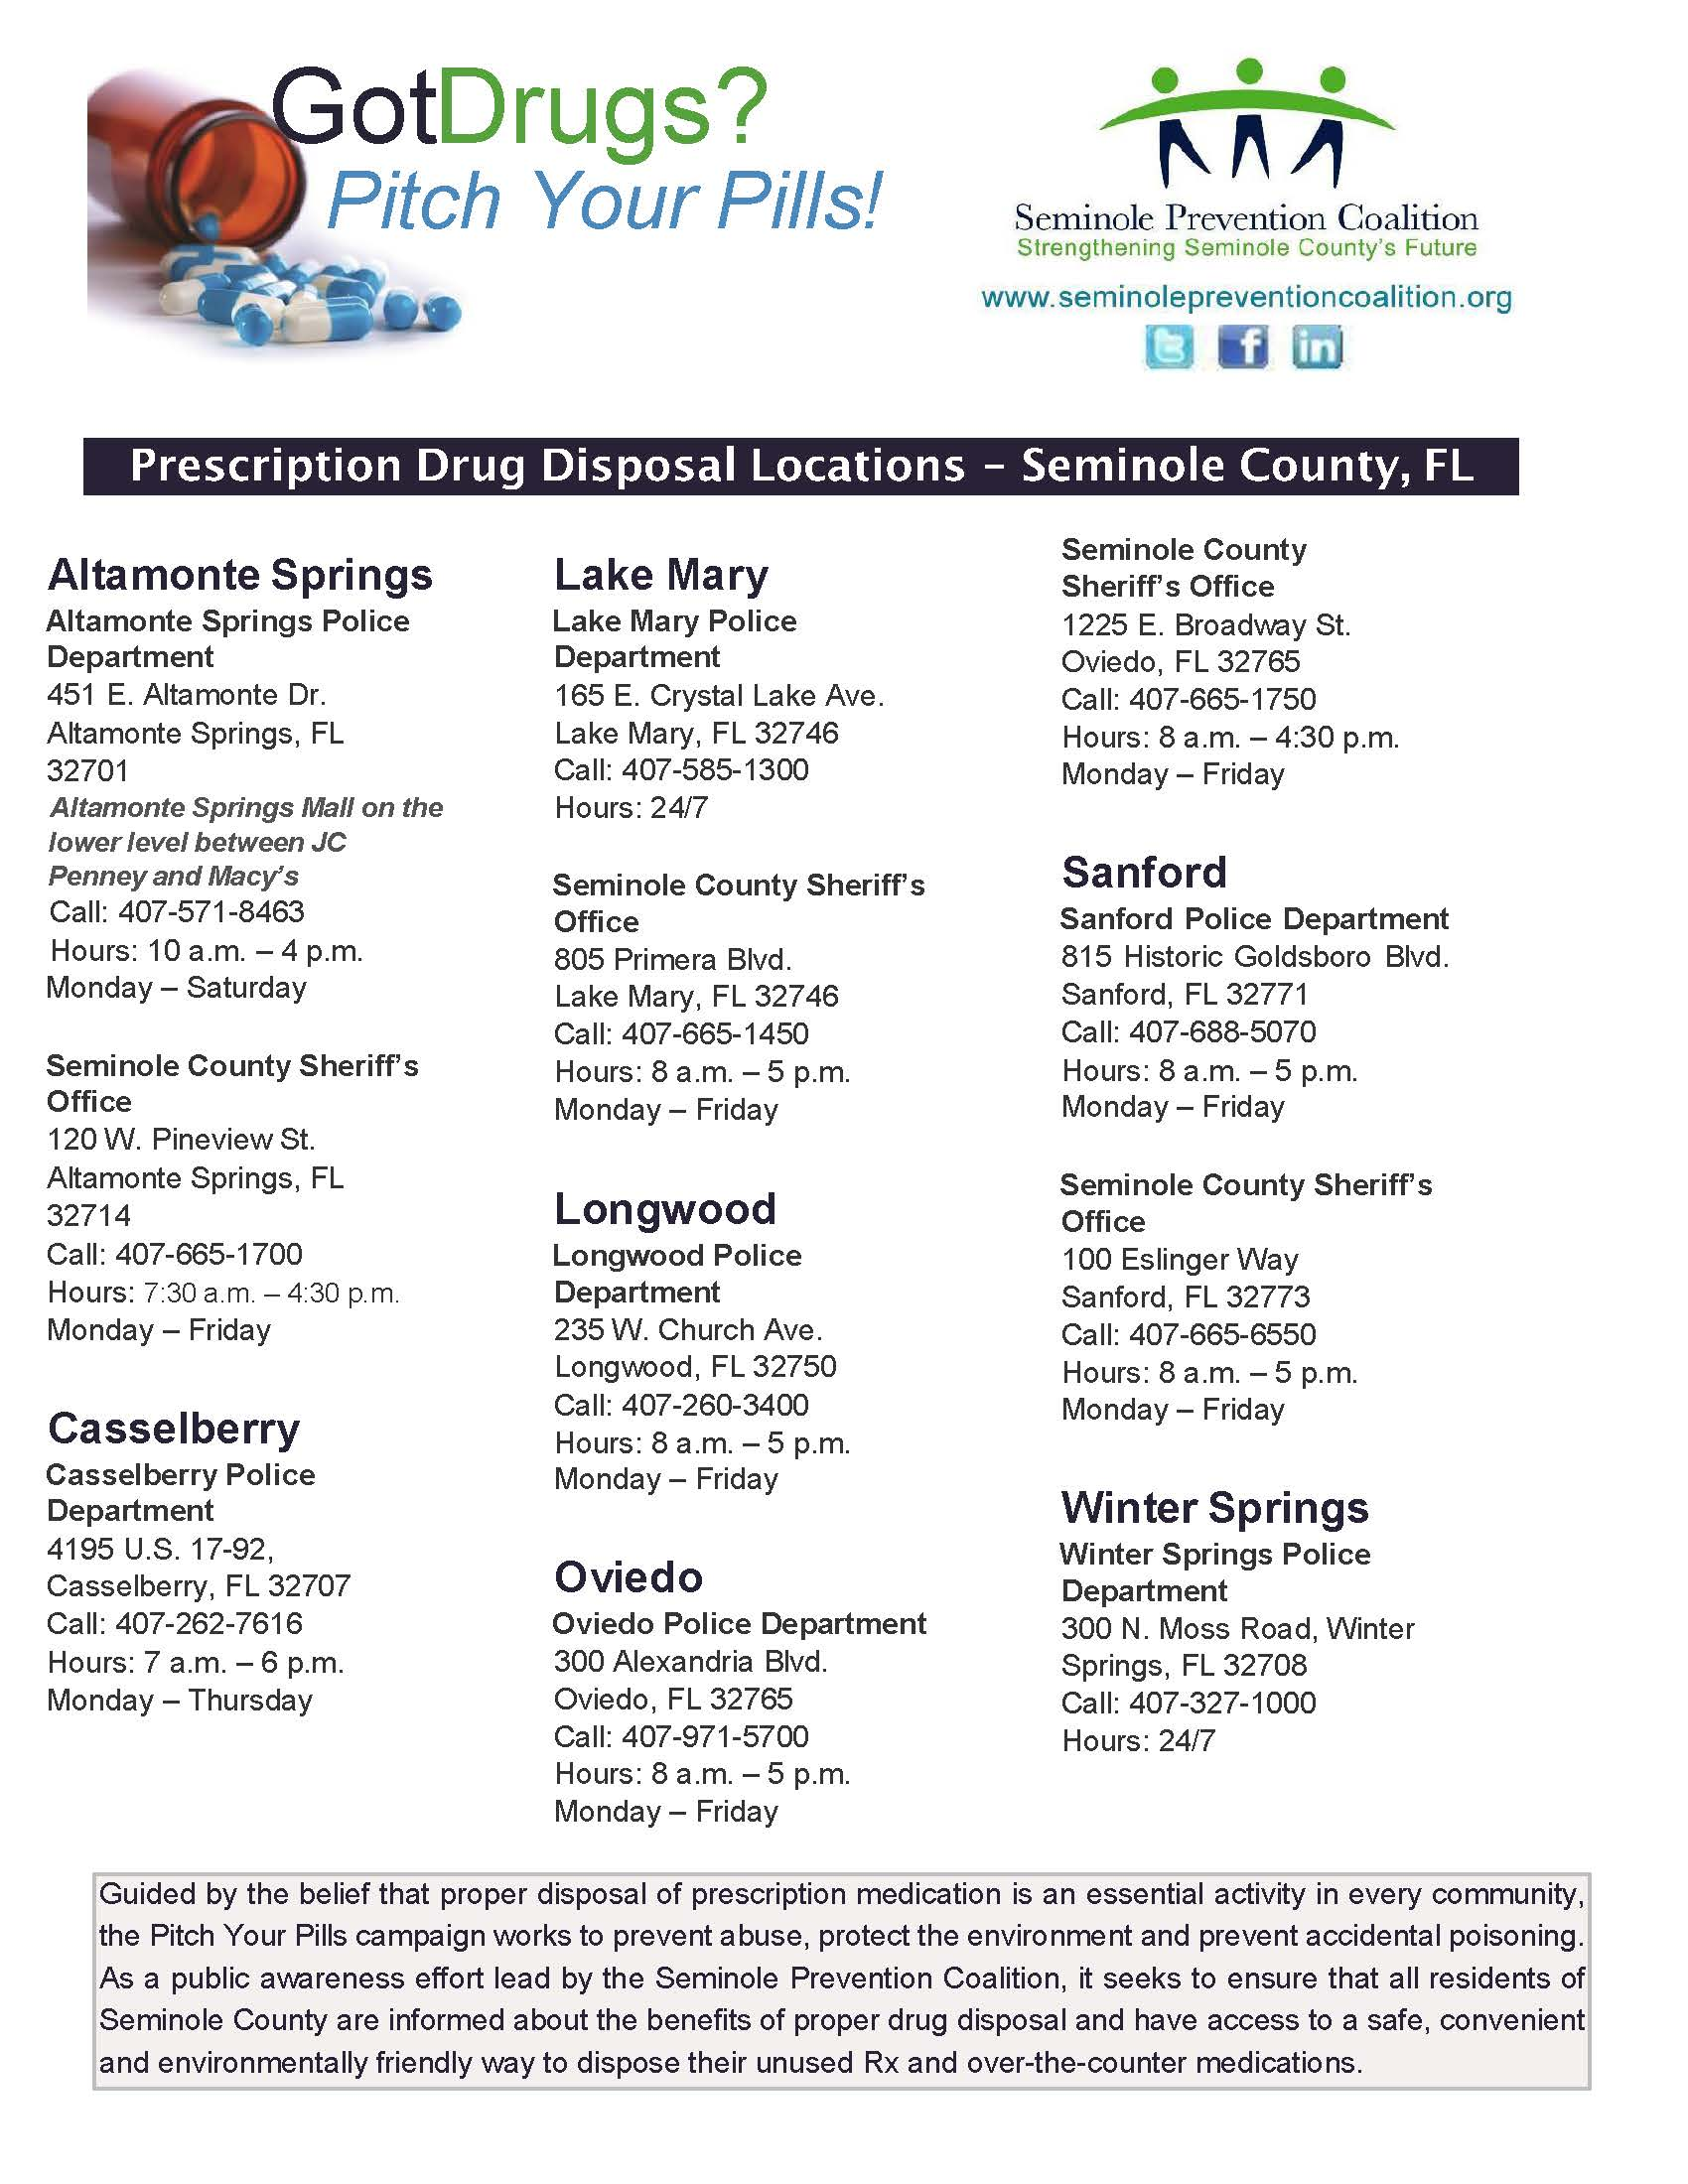 OC Drug Disposal Locations